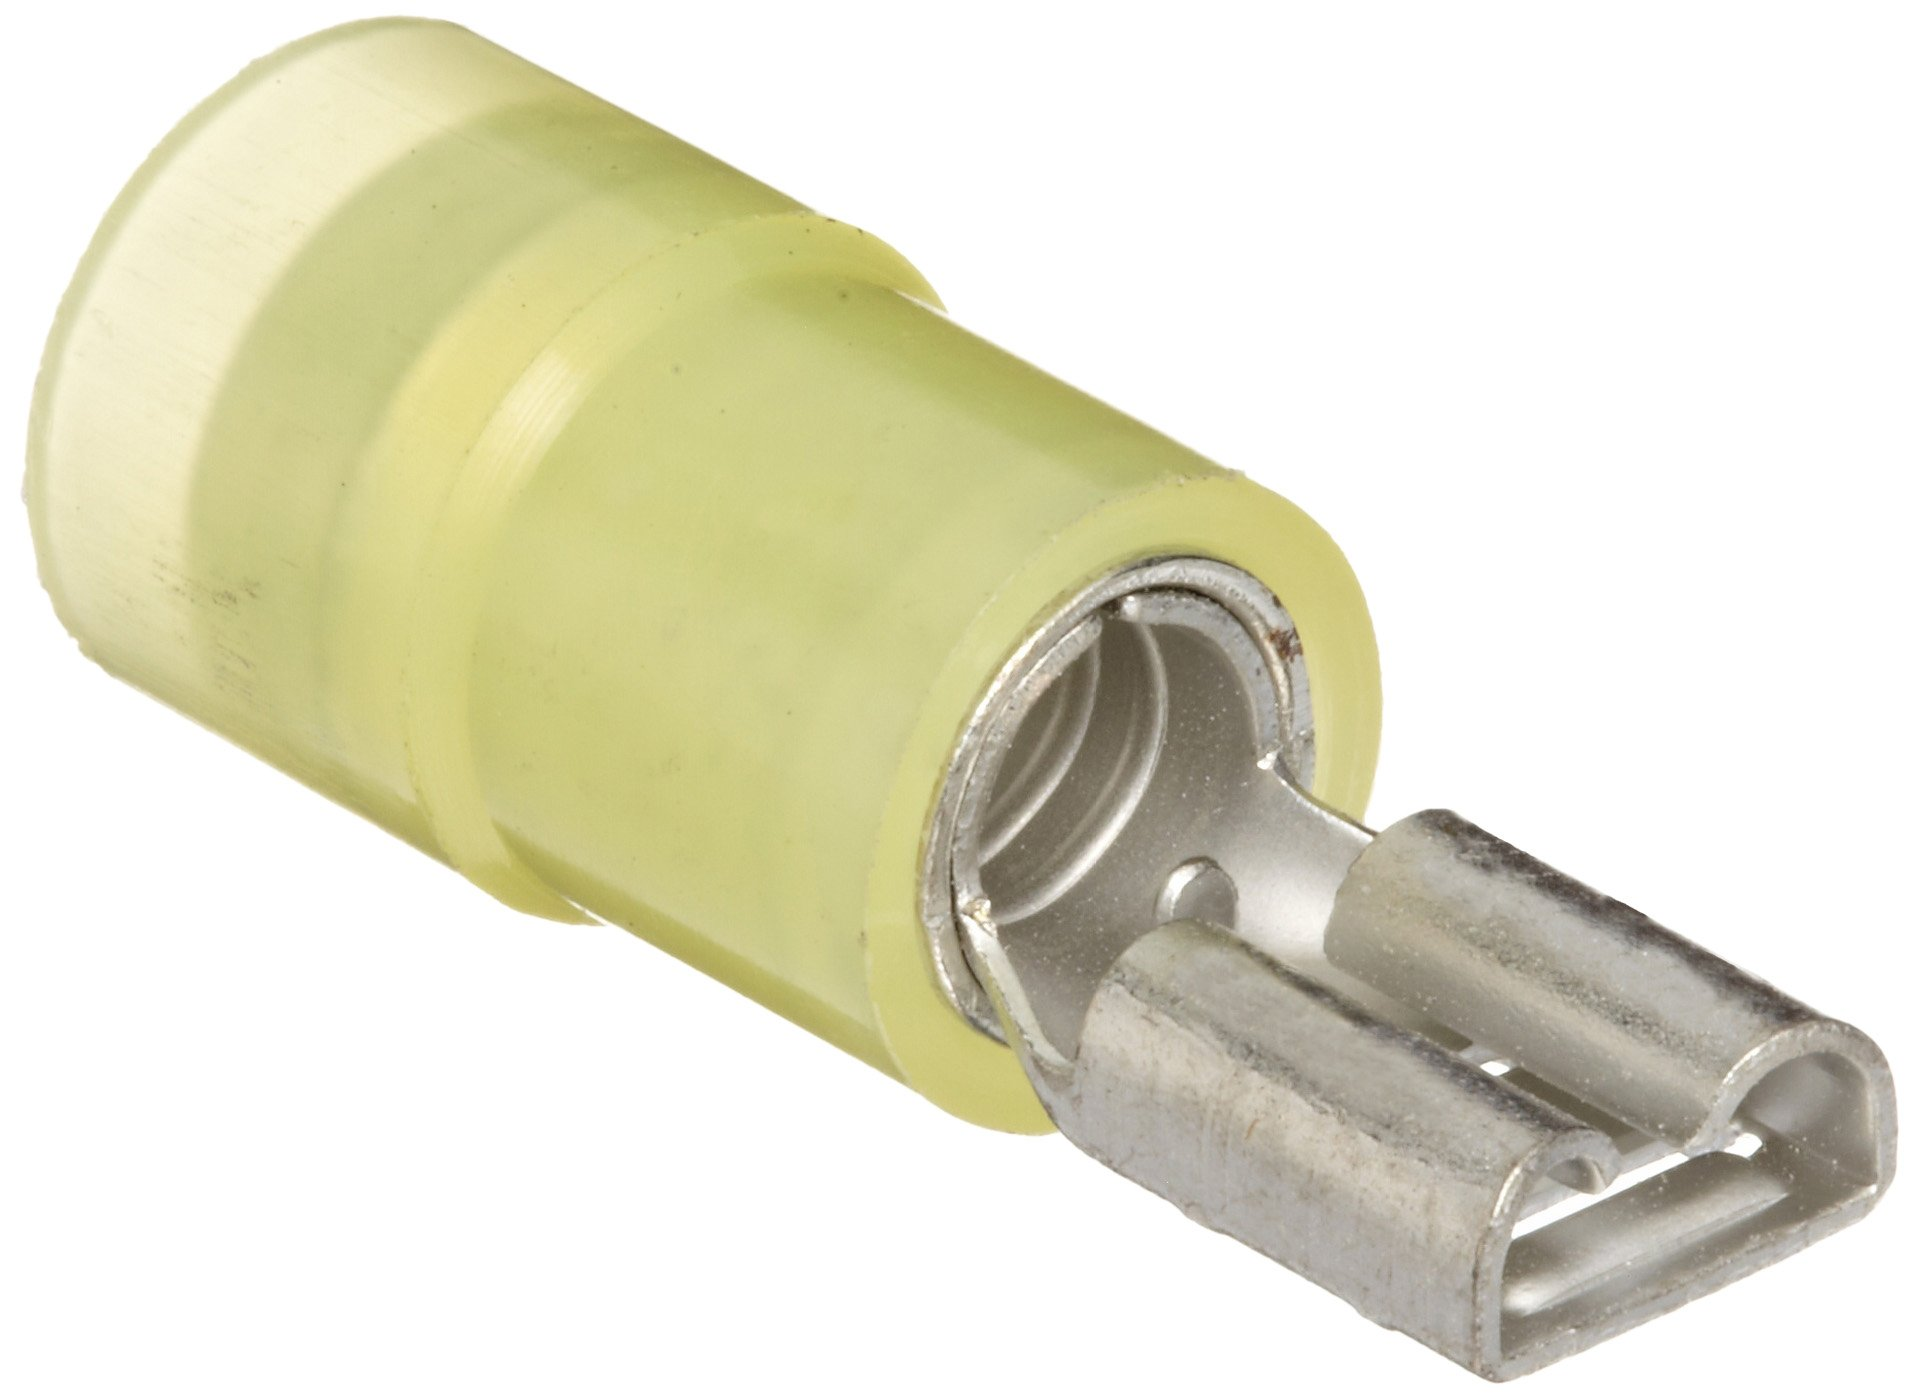 Morris Products 11932 Female Disconnect, Double Crimp, Nylon Insulated, Yellow, 12-10 Wire Size, 0.032''X0.187'' NEMA Tab  (Pack of 100)